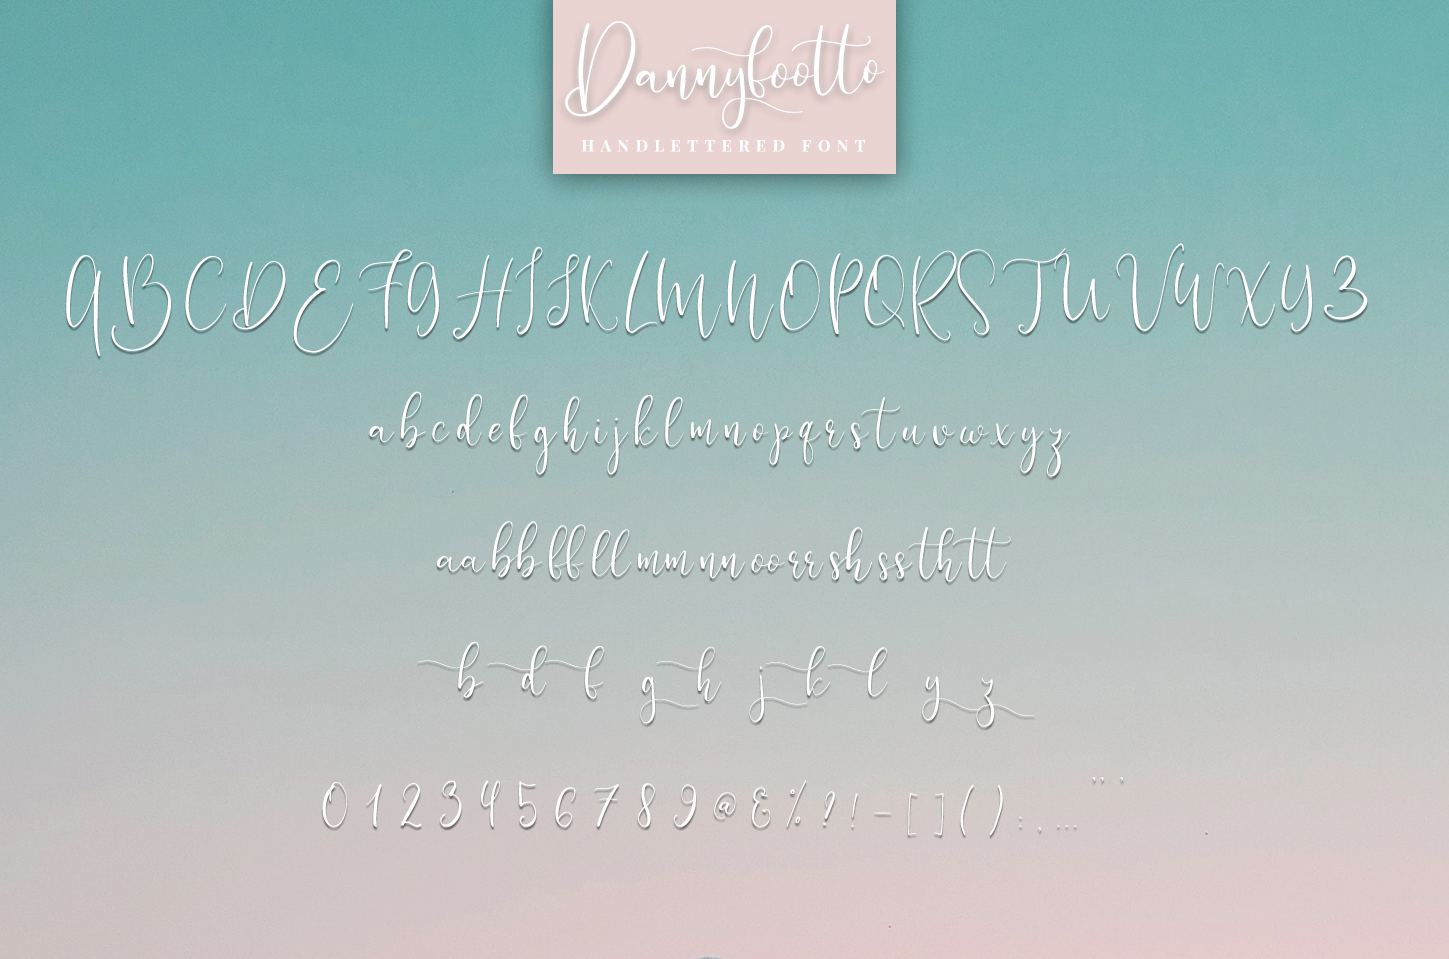 Dannyfootto///handlettered font example image 6